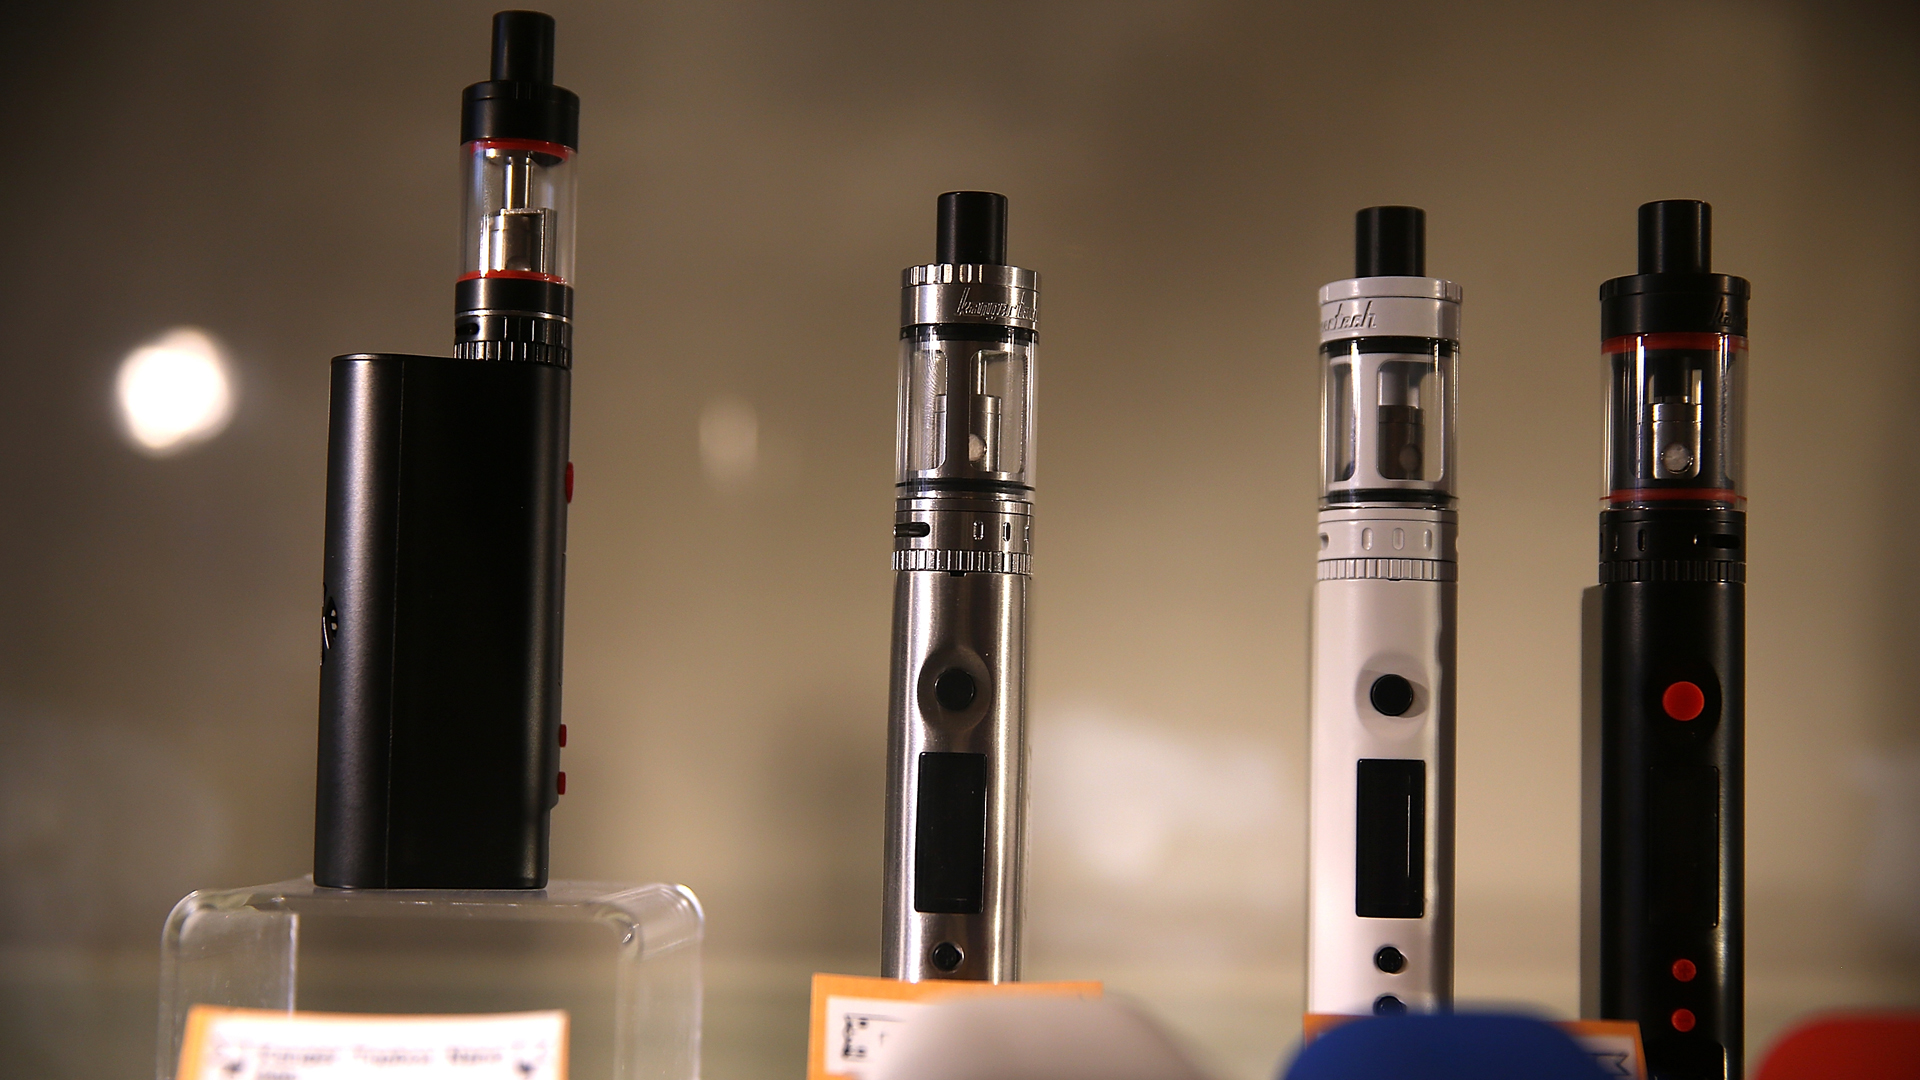 E-cigarettes are seen in a shop in San Francisco on May 5, 2016. (Credit: Justin Sullivan/Getty Images)